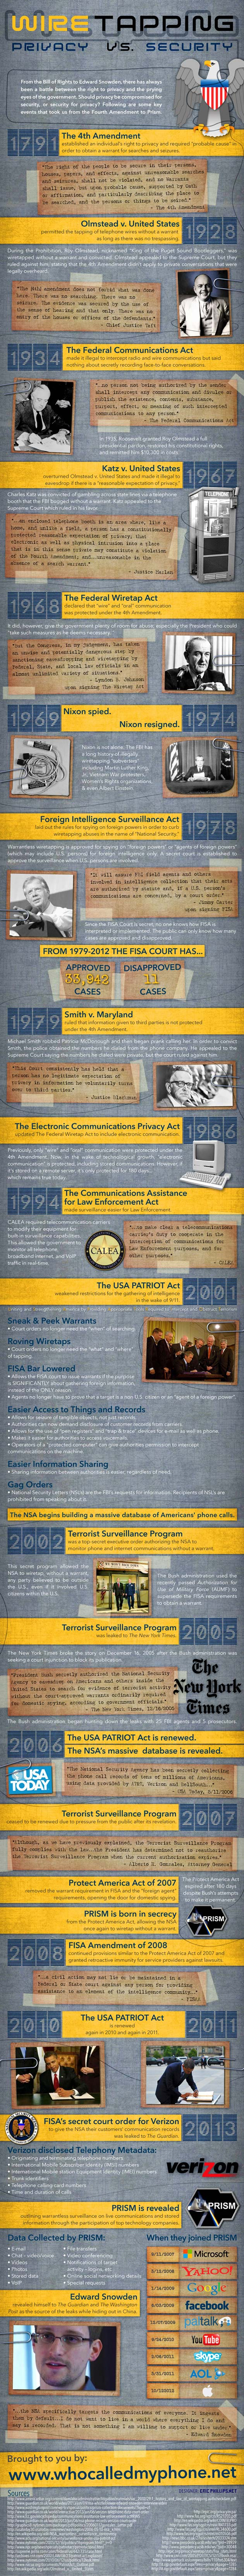 US Wiretapping History-Infographic